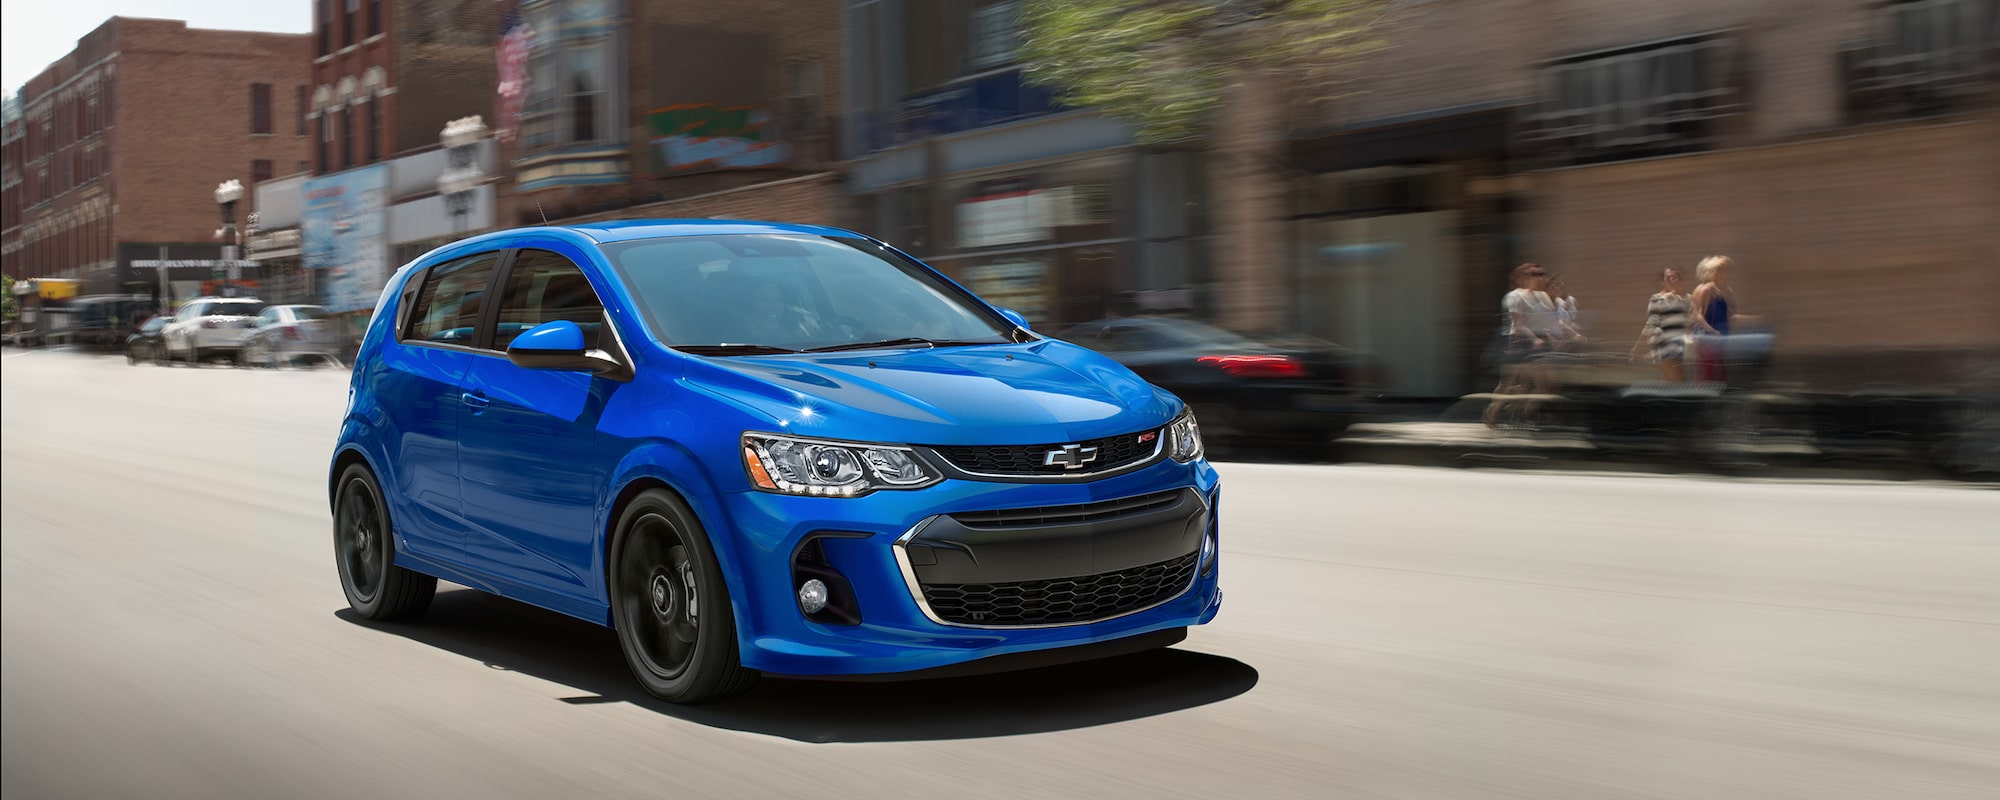 2019 Sonic Small Car Available In Sedan Hatchbackrhchevrolet: Colors In Addition 2013 Chevy Sonic Wiring Diagram At Gmaili.net